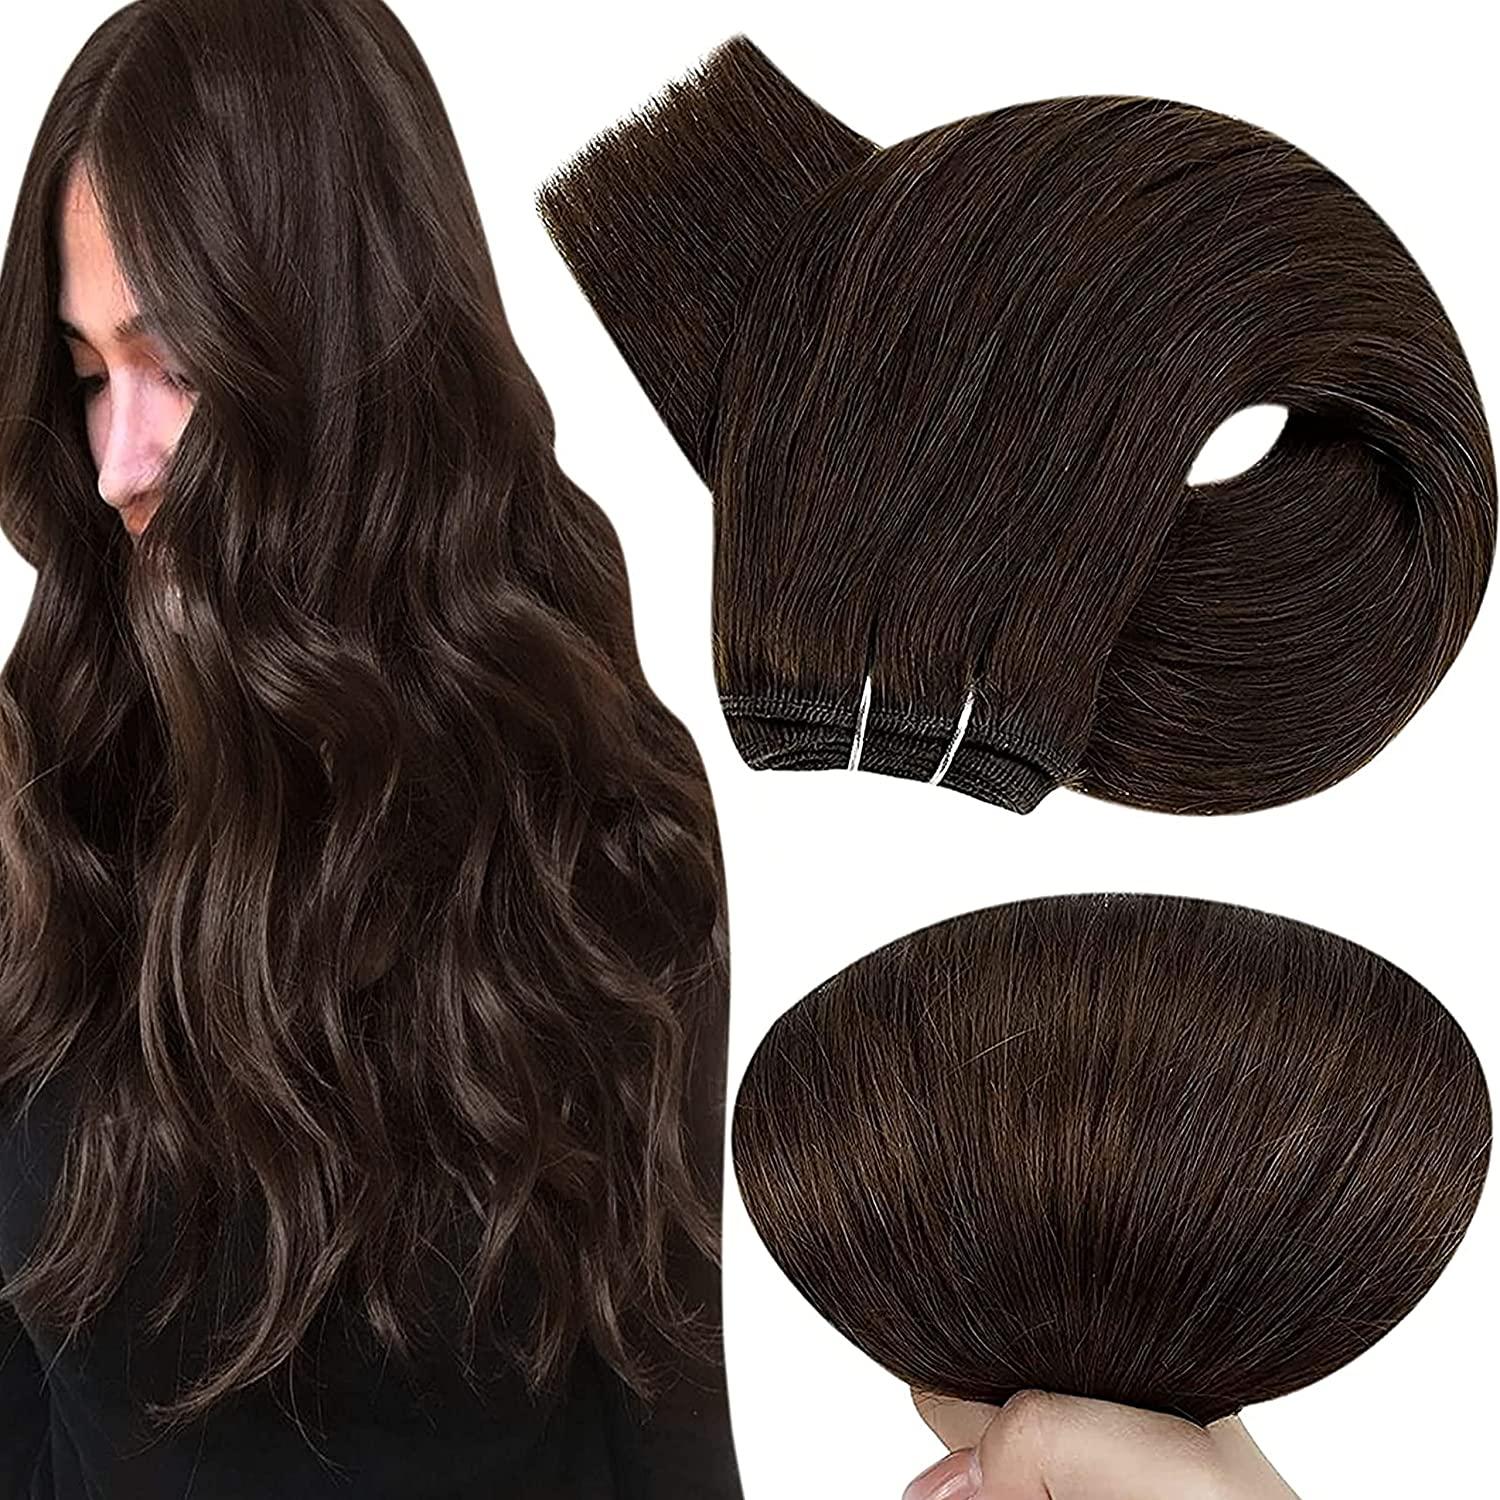 Hetto Brown Human Hair Weft Extensions H Inch 14 Sew 80g in Ranking List price TOP4